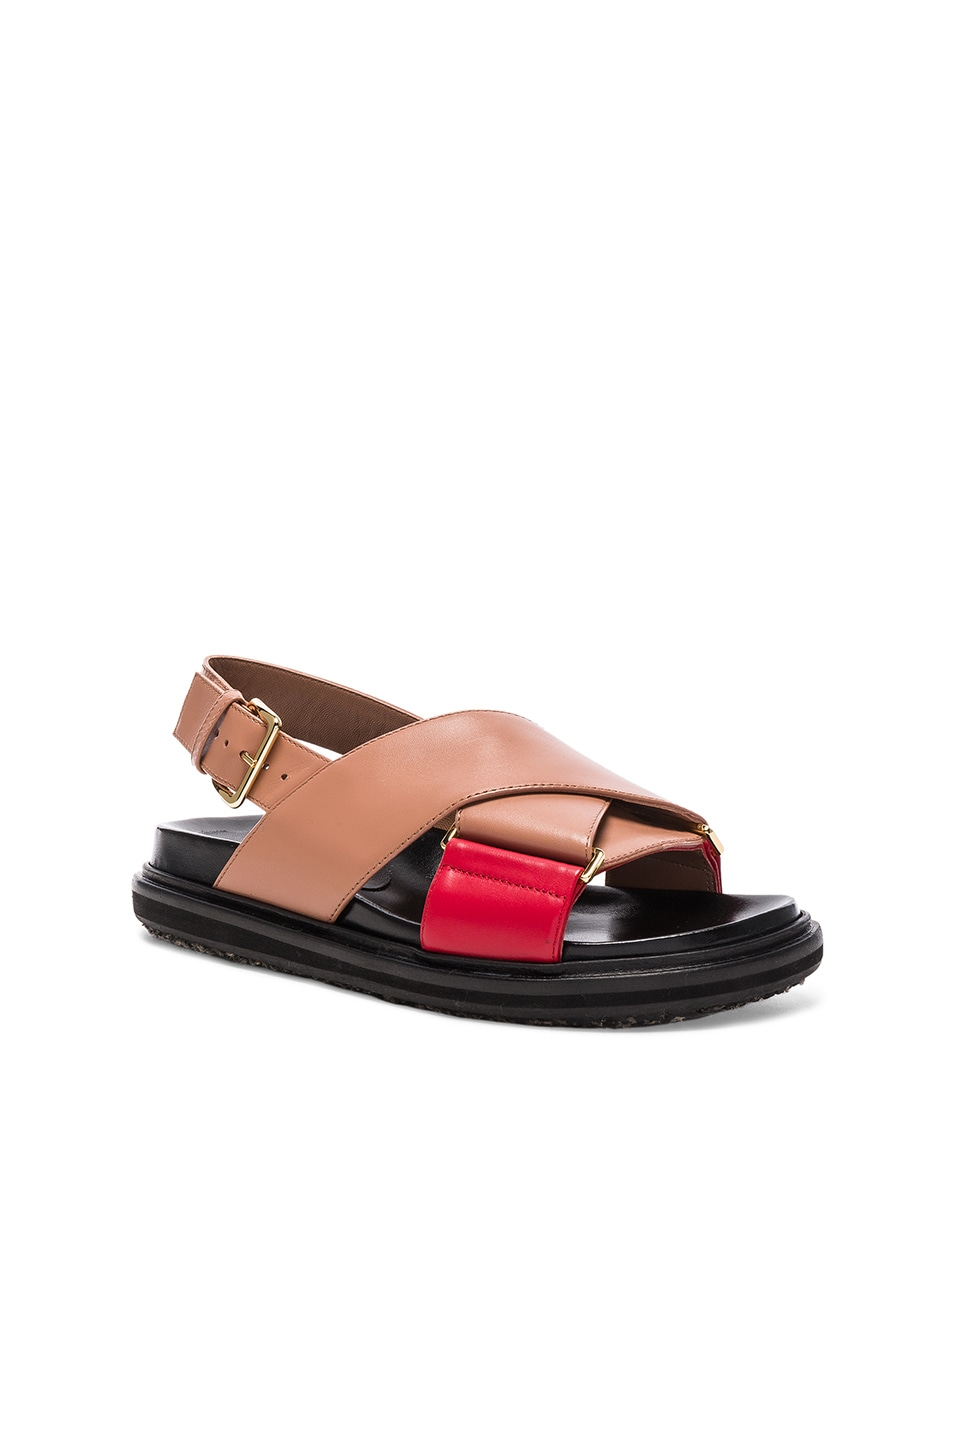 Image 2 of Marni Leather Fussbett Sandals in Cameo & Indian Red